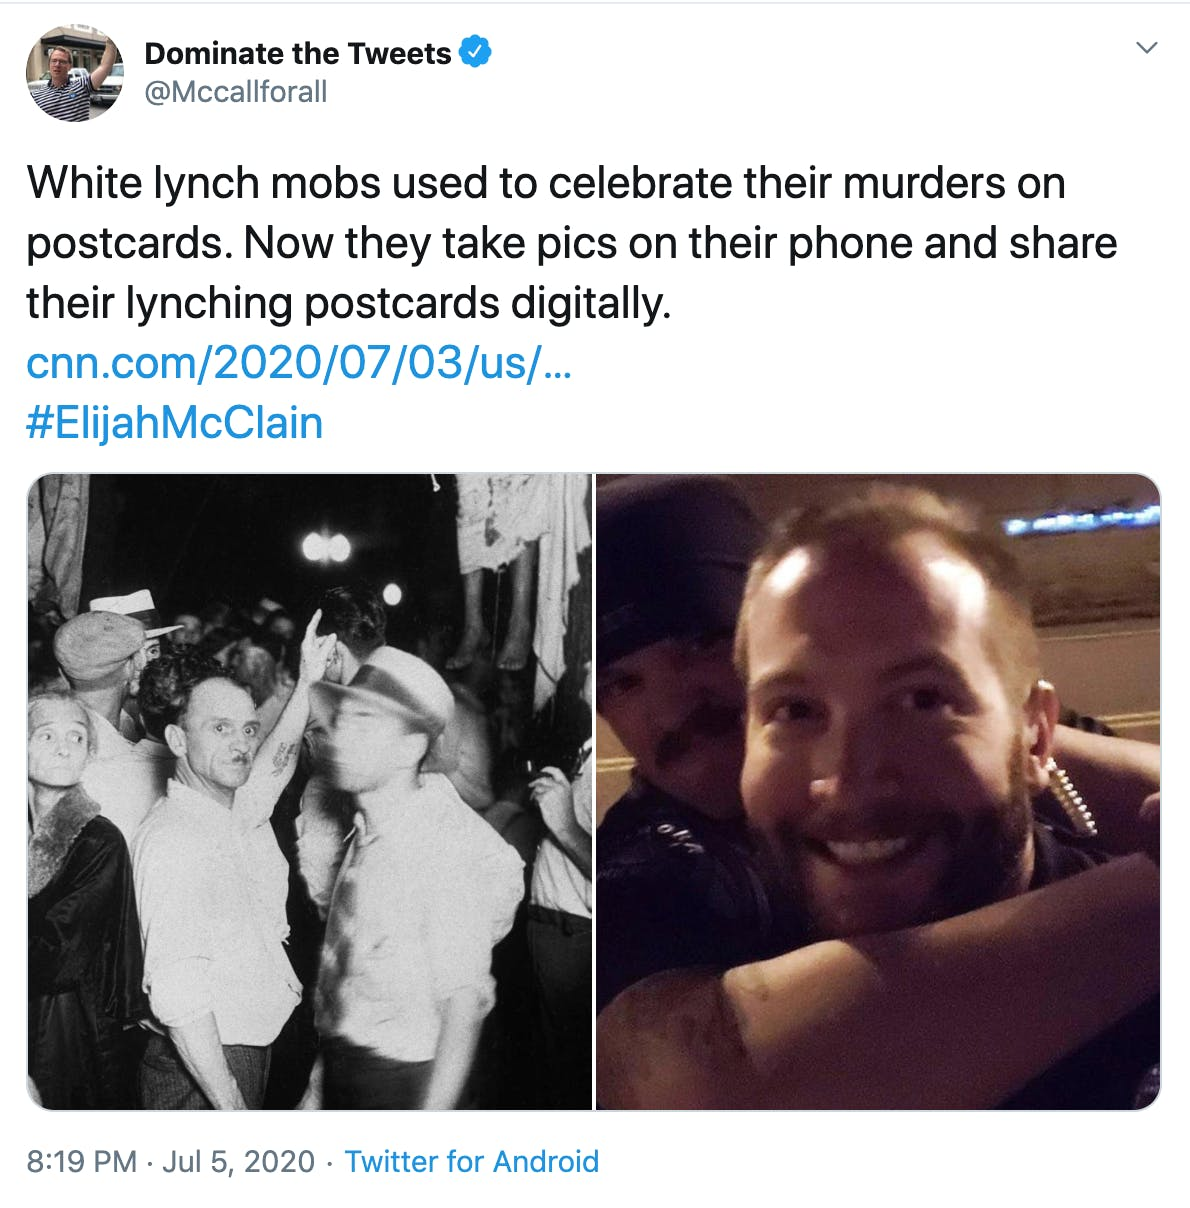 """""""White lynch mobs used to celebrate their murders on postcards. Now they take pics on their phone and share their lynching postcards digitally."""" picture of lynching crowd next to the police selfies"""